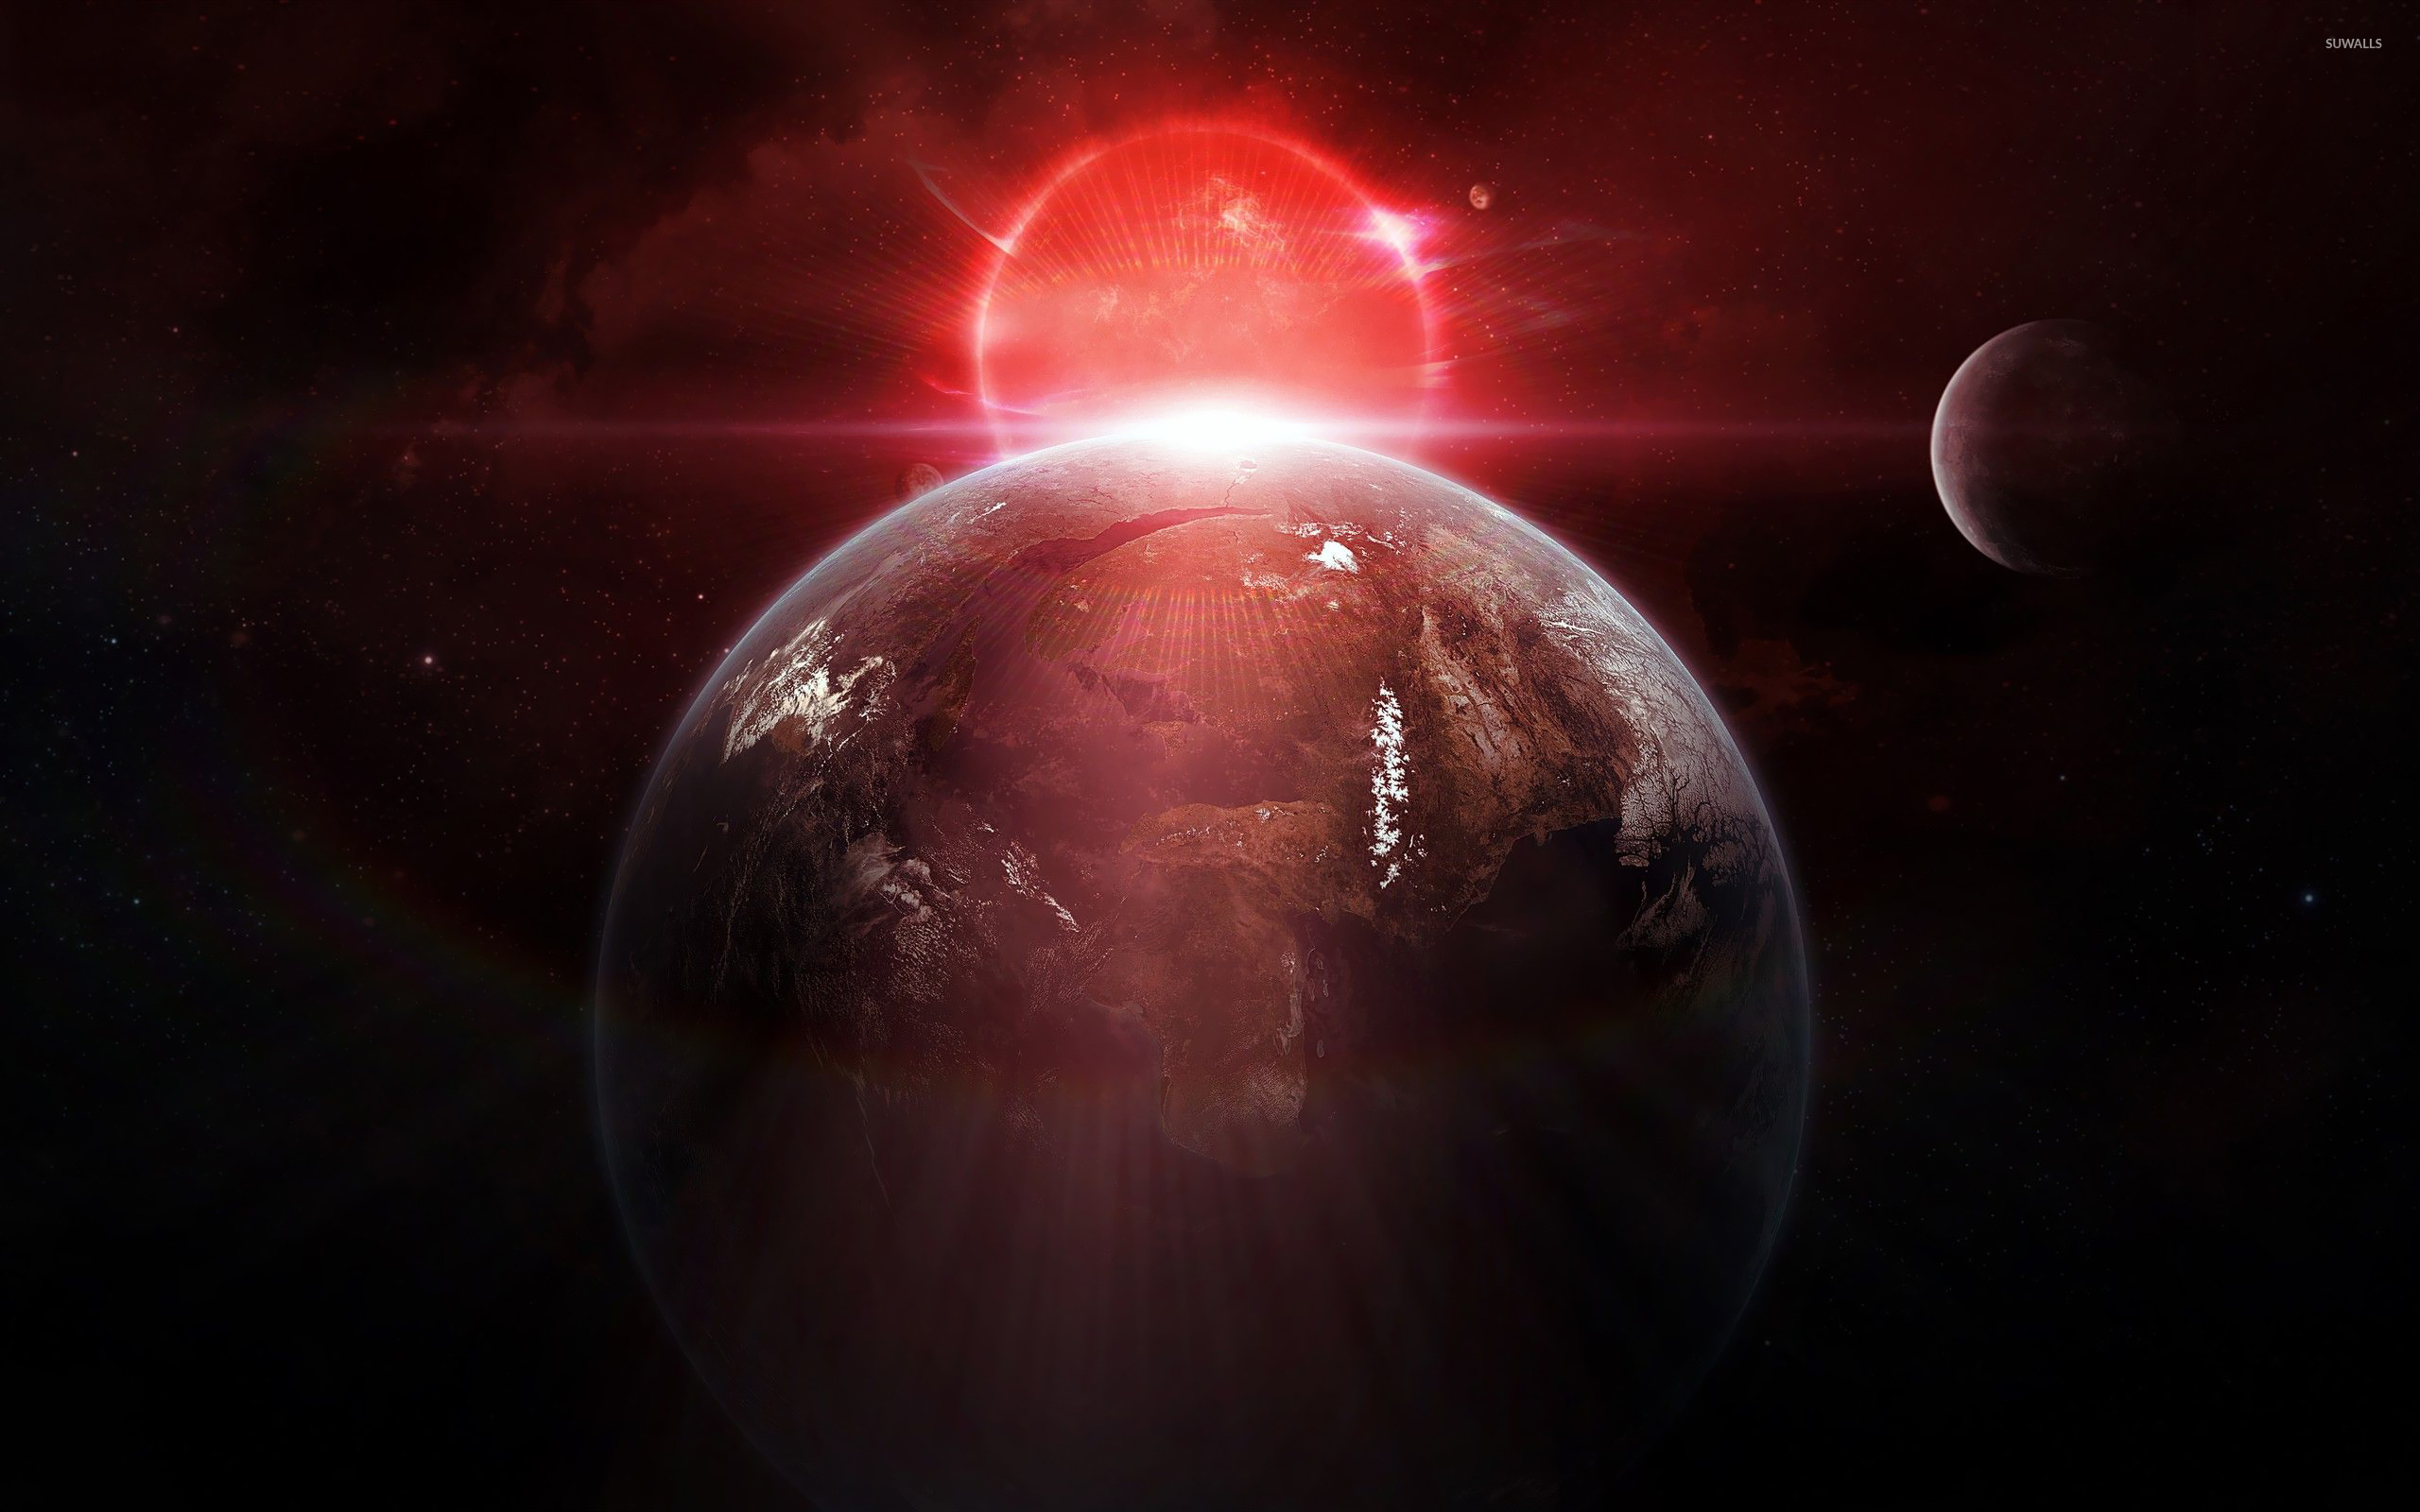 Sunrise Wallpapers With Quotes Red Light Behind The Planet Wallpaper Space Wallpapers